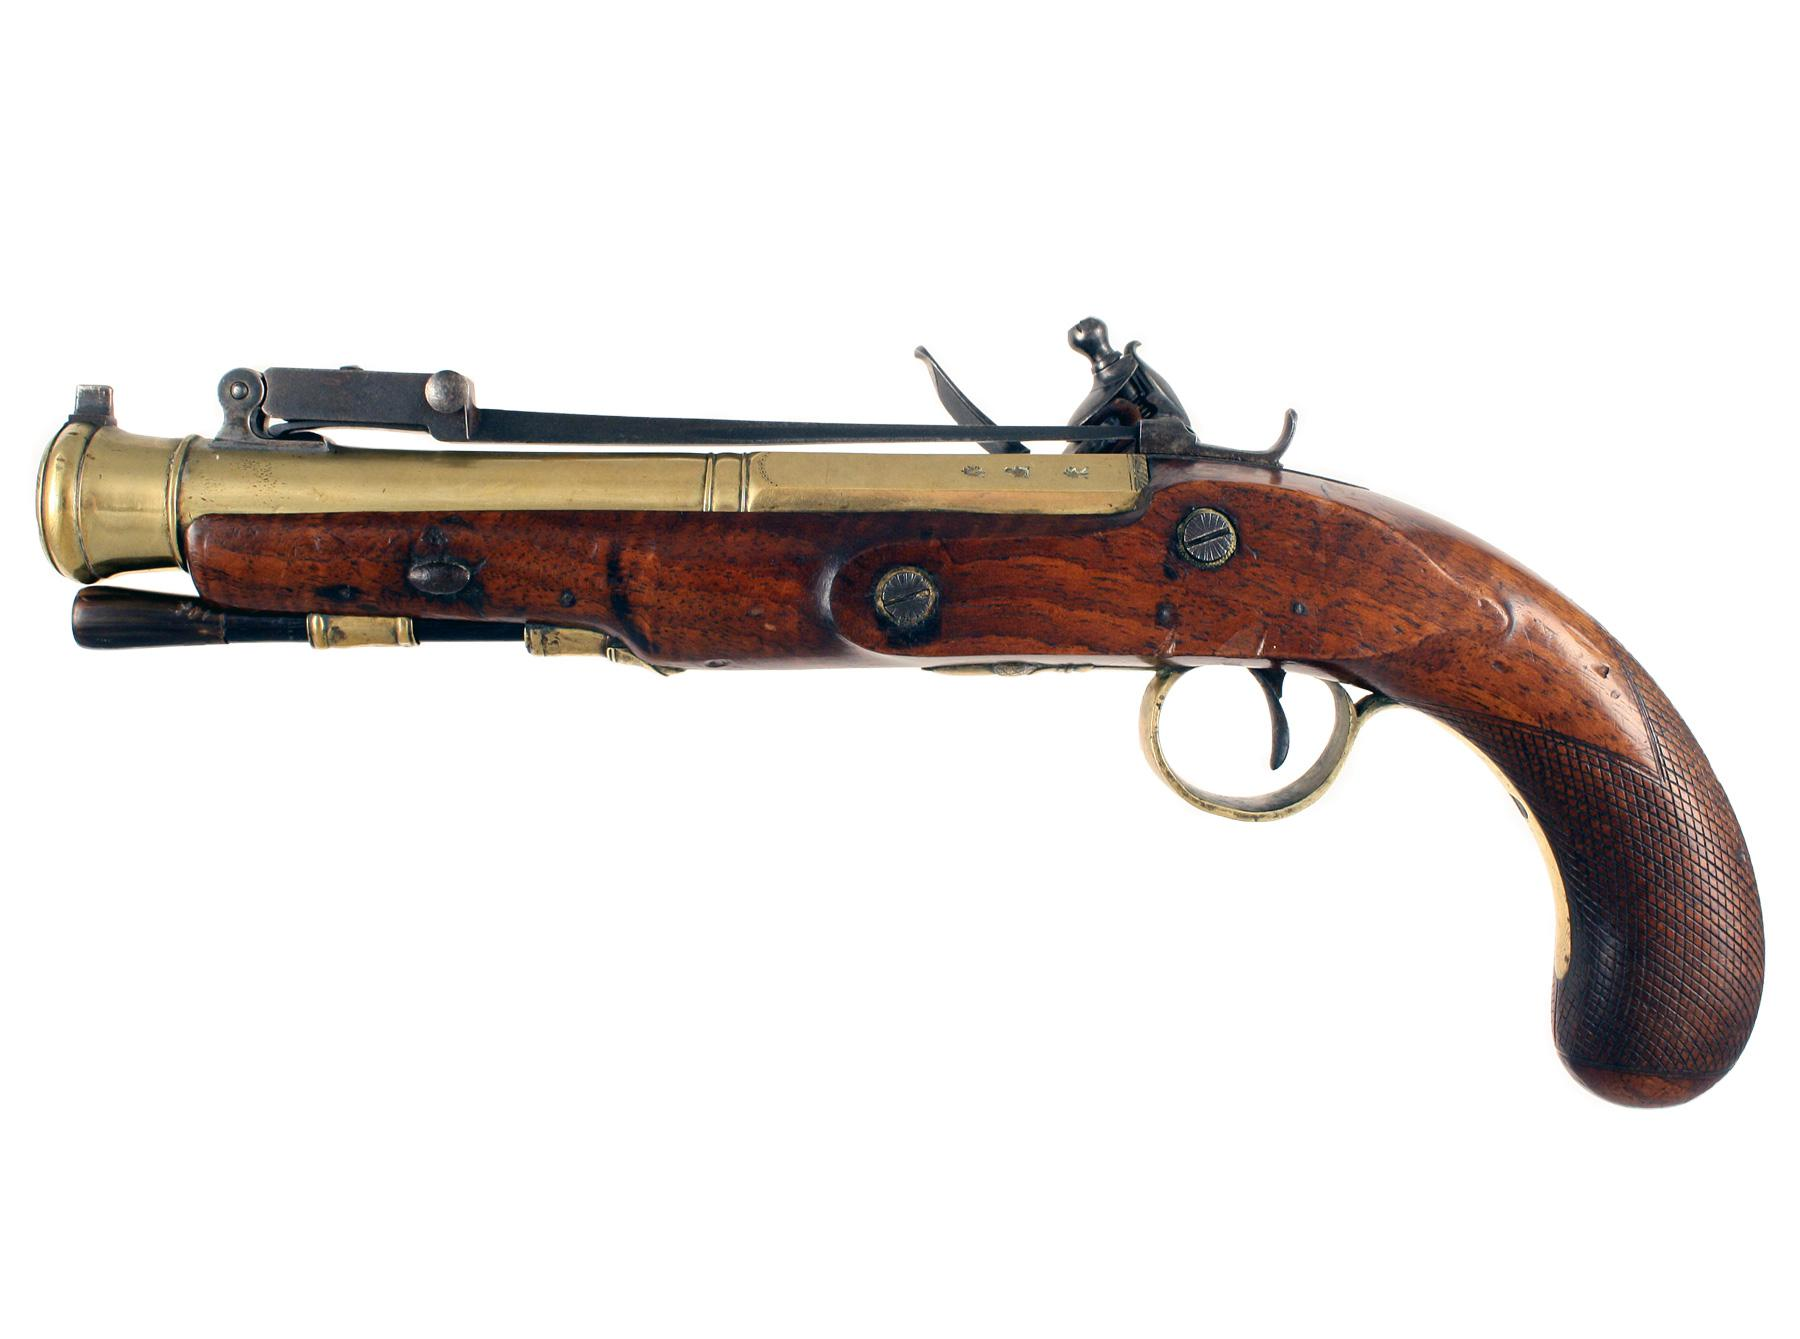 A Flintlock Blunderbuss Pistol by Twigg